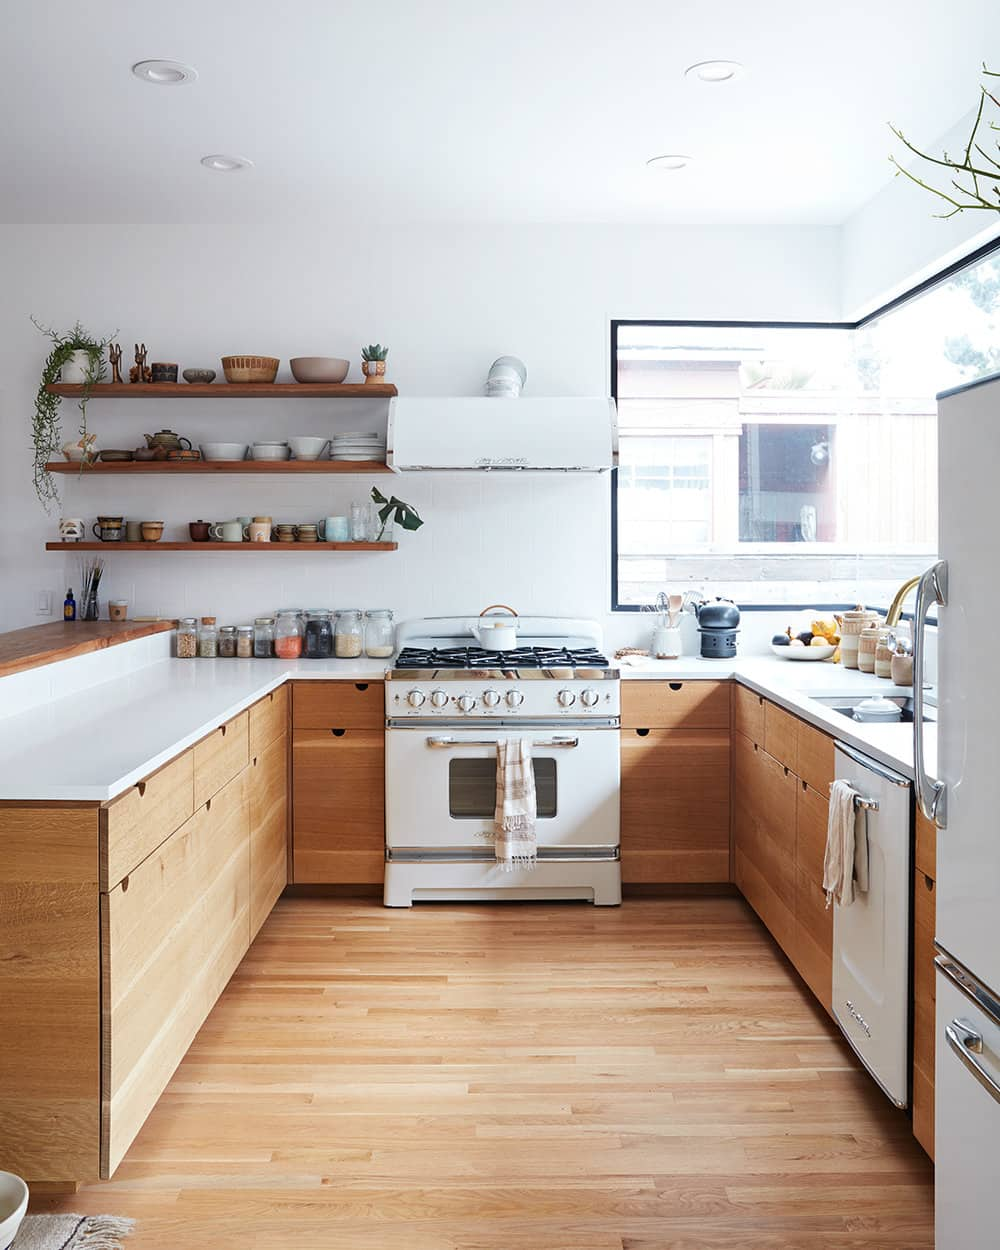 Kitchens Without Upper Cabinets: Should You Go Without